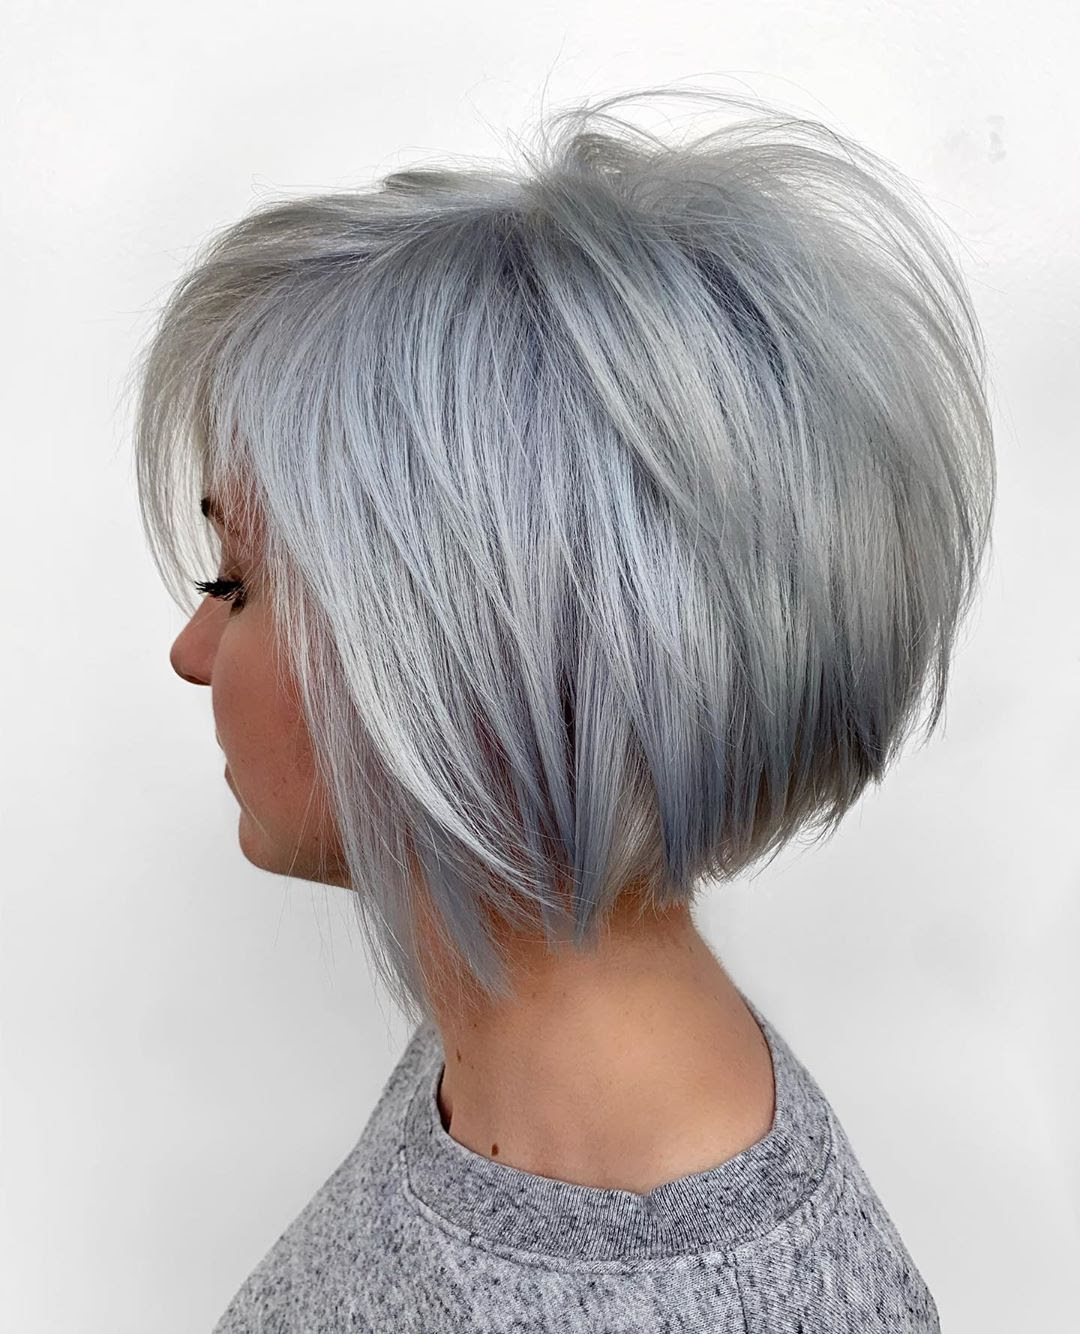 10 Short Bob Hair Color Ideas - Women Short Hair Styles Color 2020 - 2021